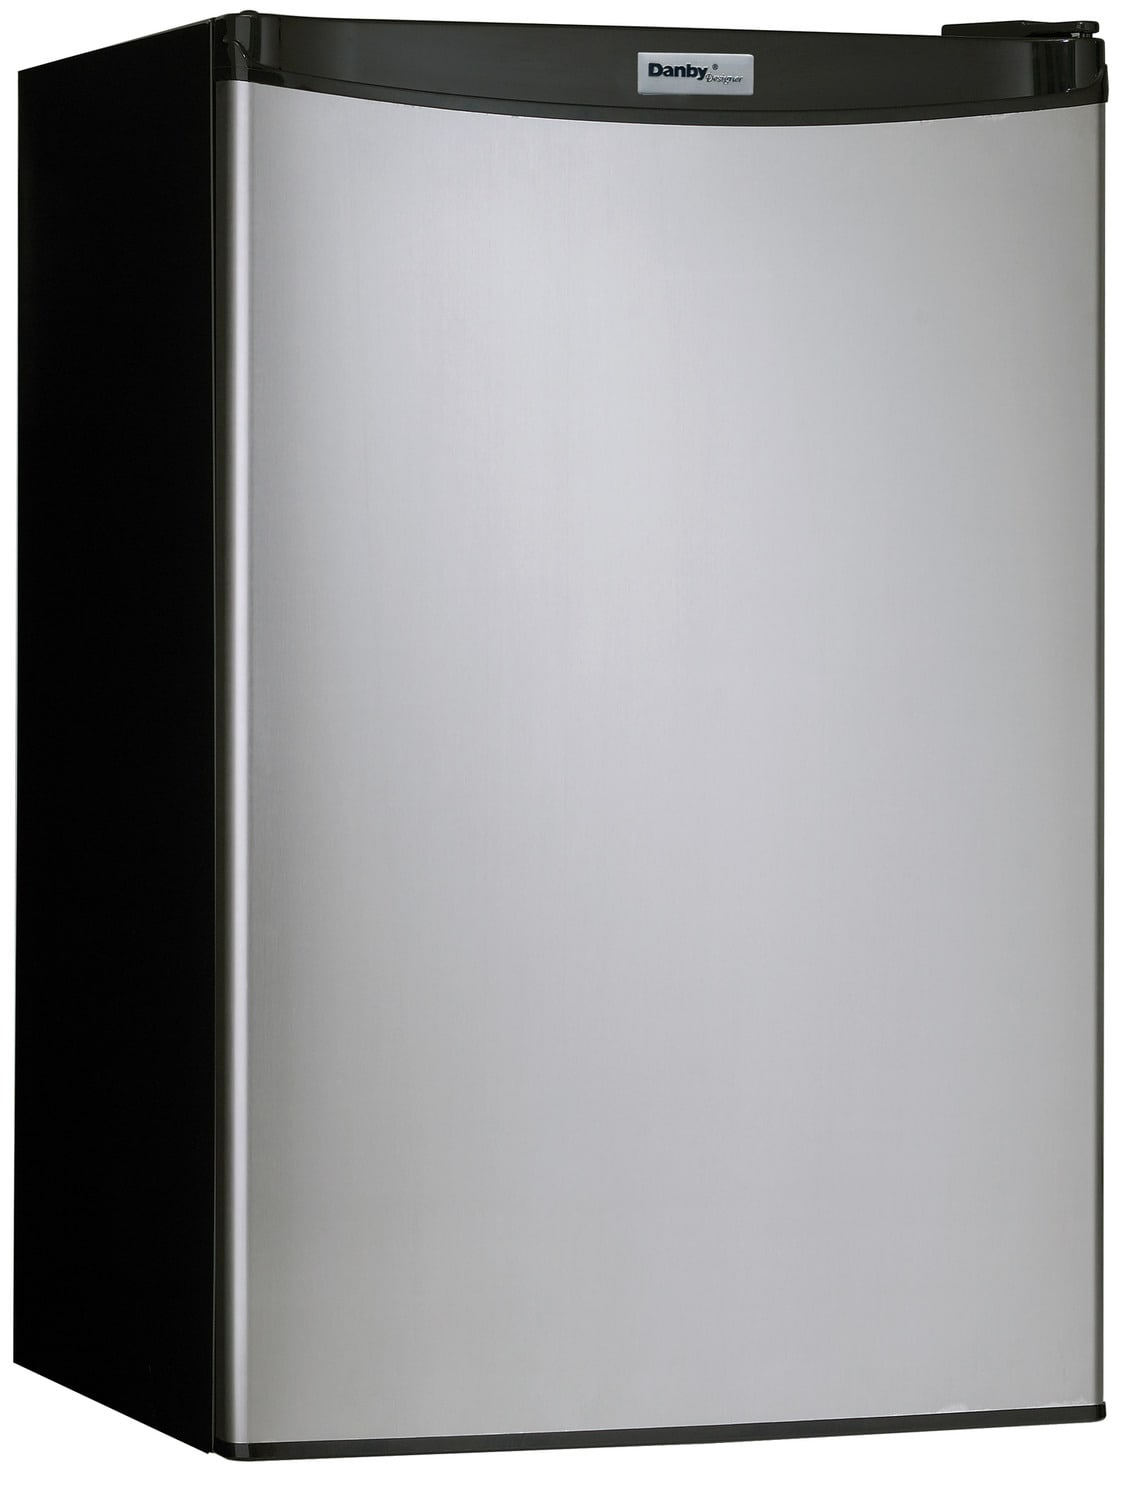 Refrigerators and Freezers - Danby Stainless Steel Compact Refrigerator (4.4 Cu. Ft.) - DCR044A2BSLDD